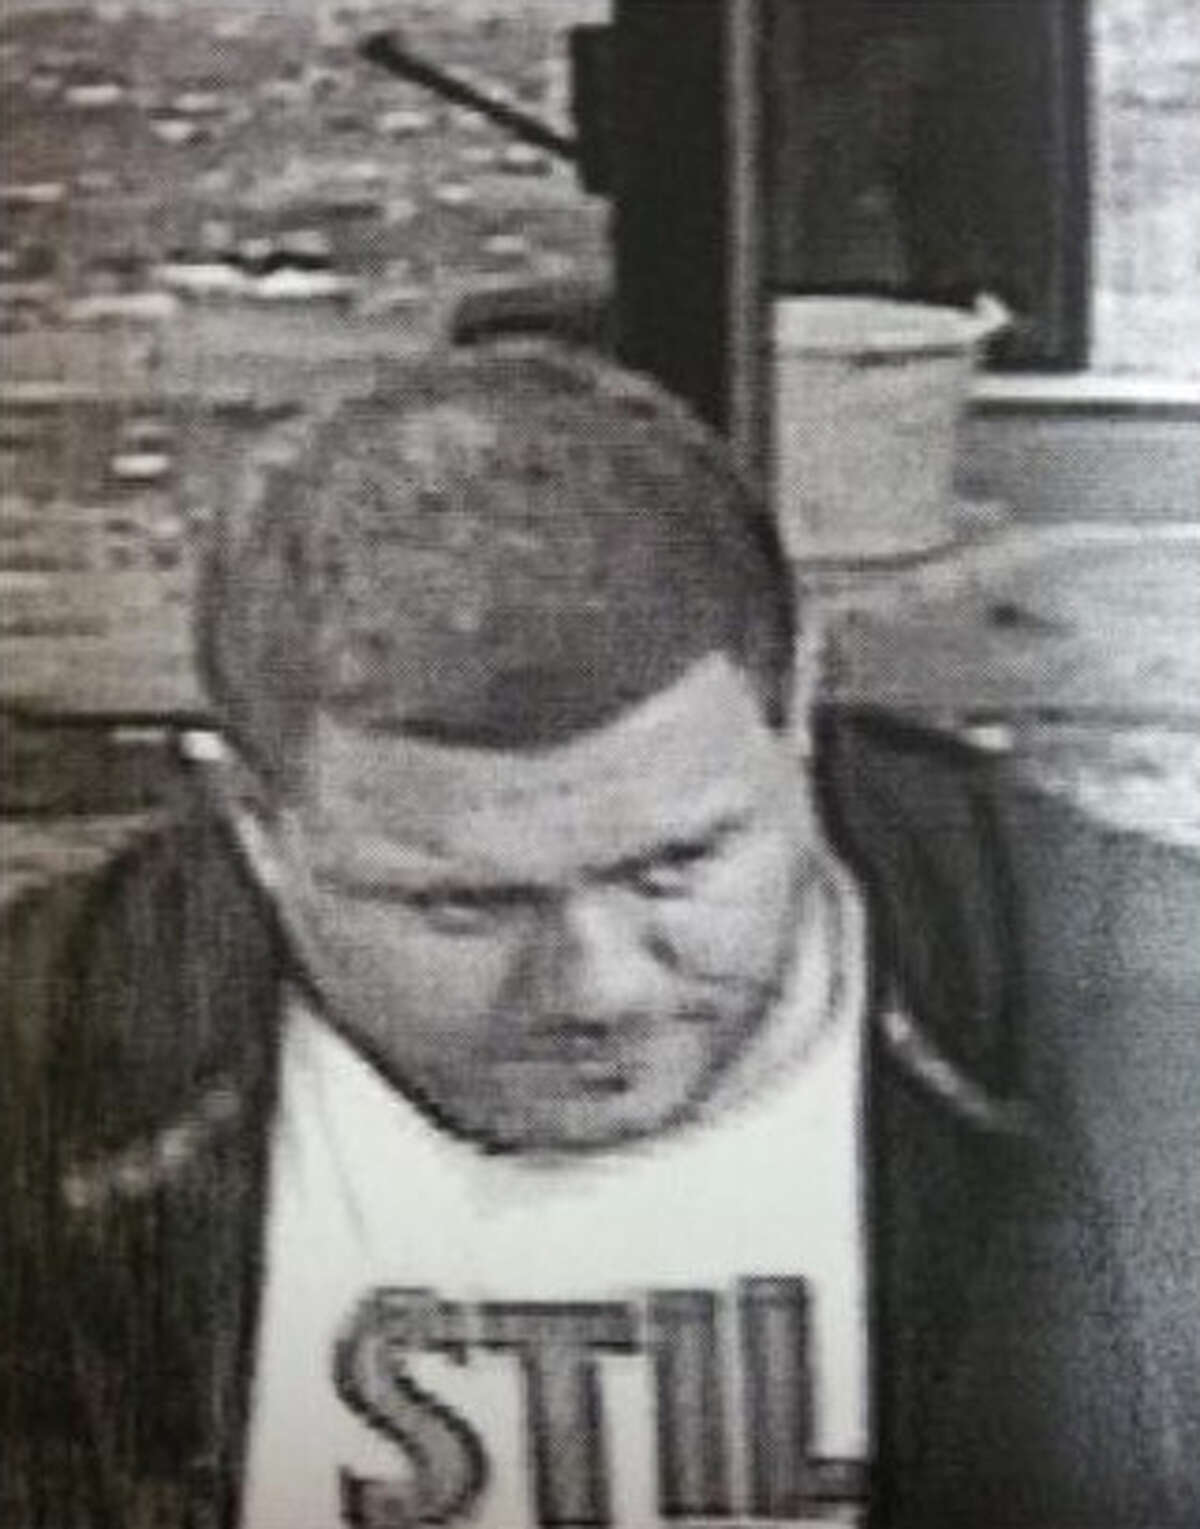 Guilderland Police are looking for this man captured on surveillance tape in connection with a series of burglaries that occured on Western Avenue in Guilderland on Oct. 16, 2014. Police said the man is a